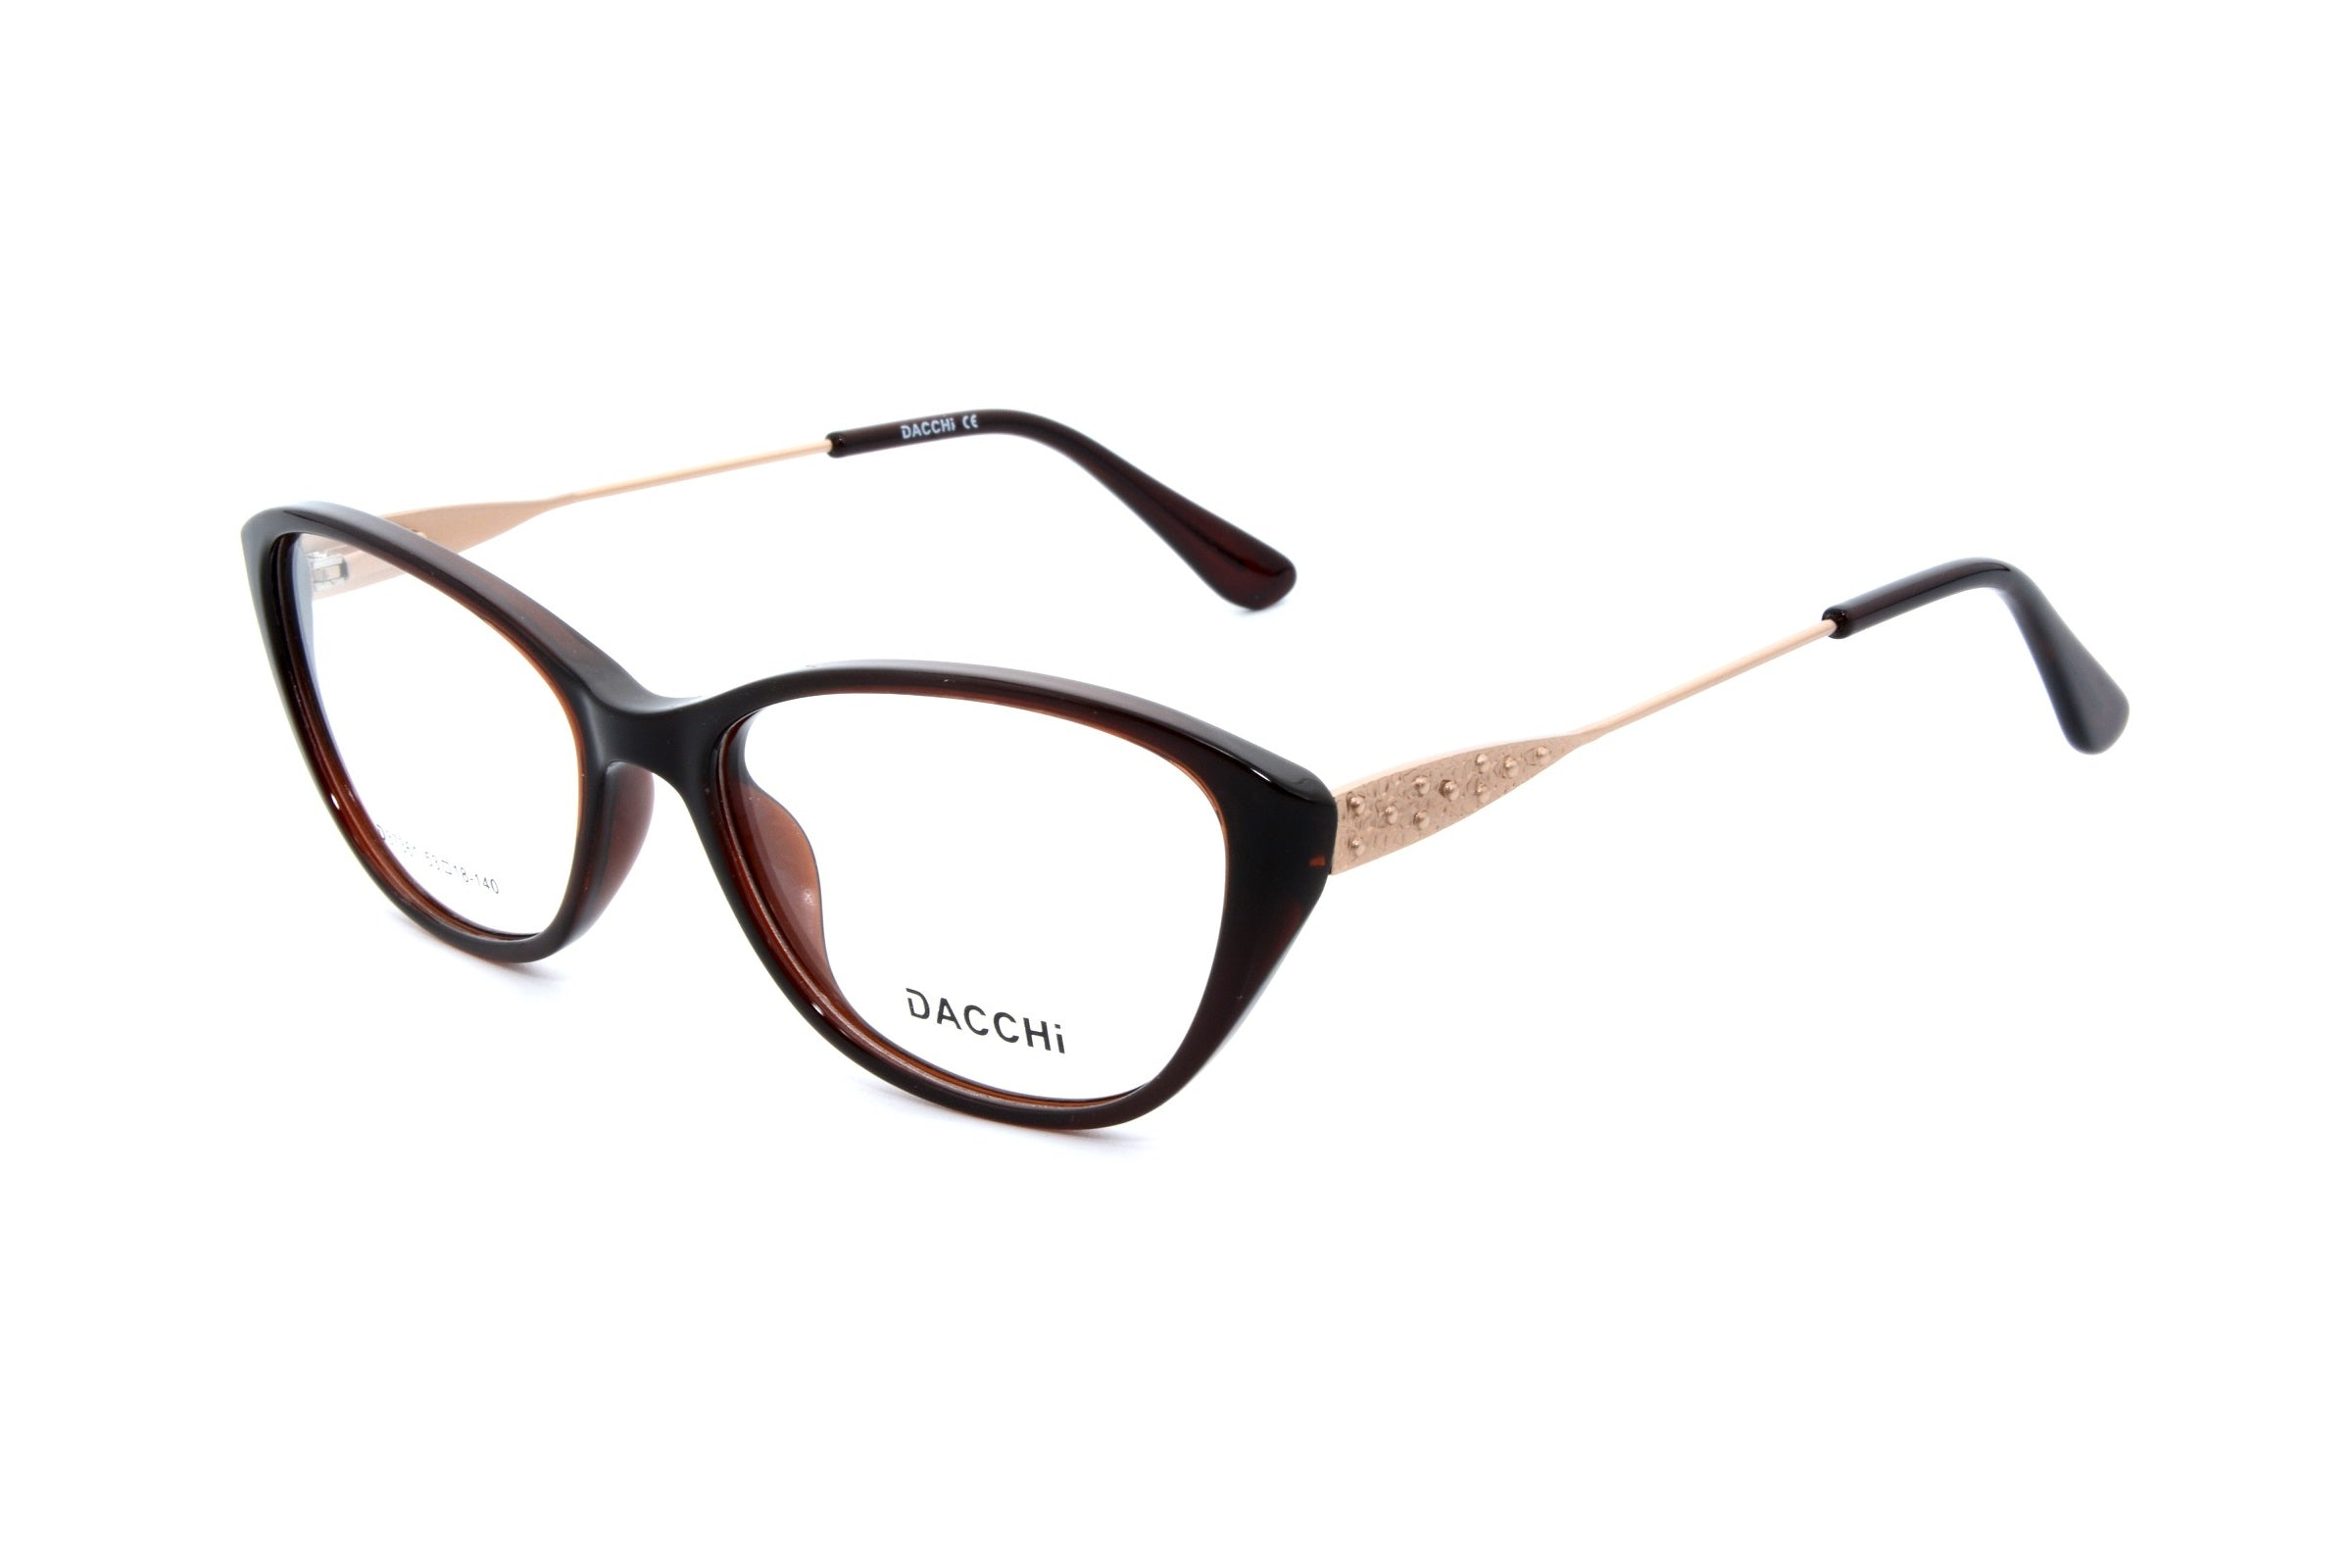 Dacchi eyewear 37361, C2 - Optics Trading